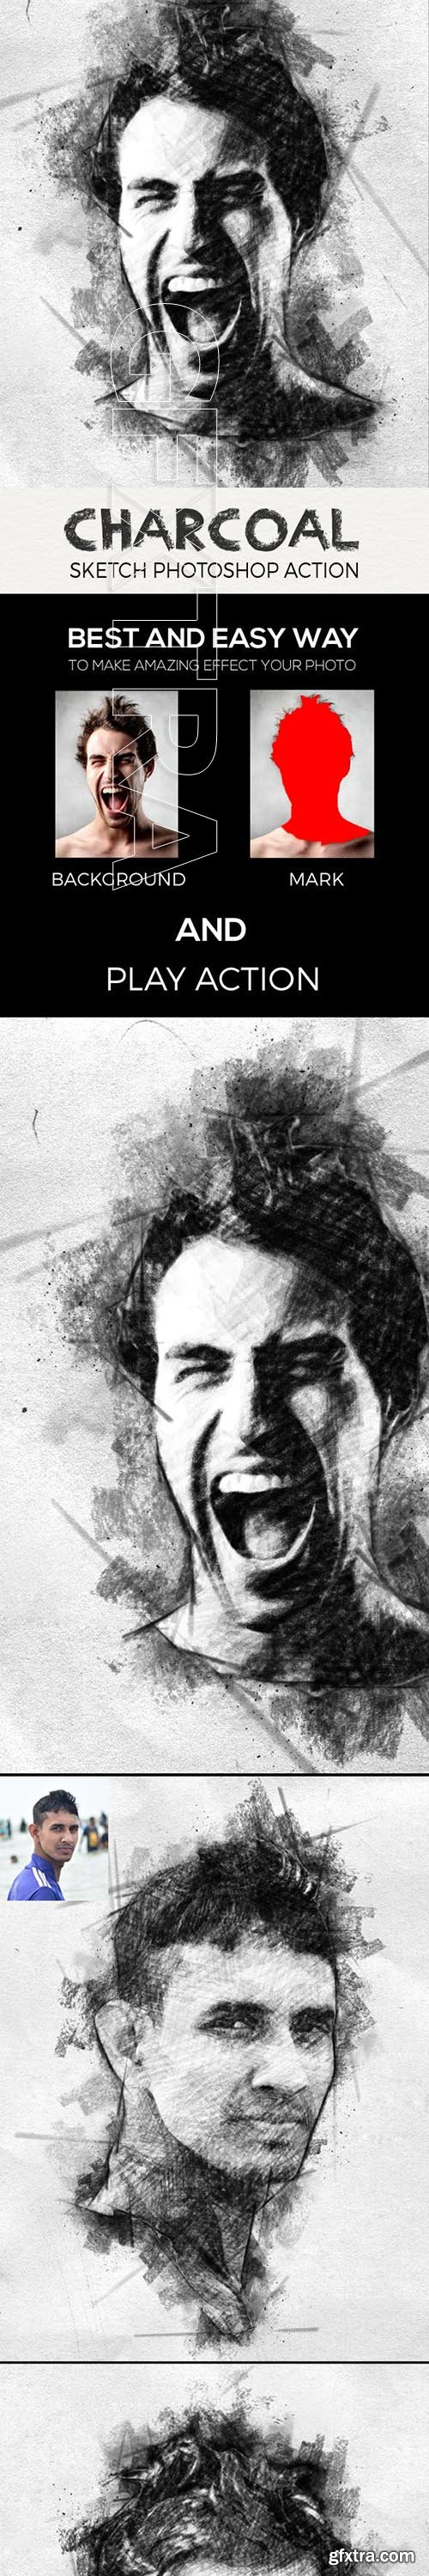 GraphicRiver - Charcoal Sketch Photoshop Action 23561887